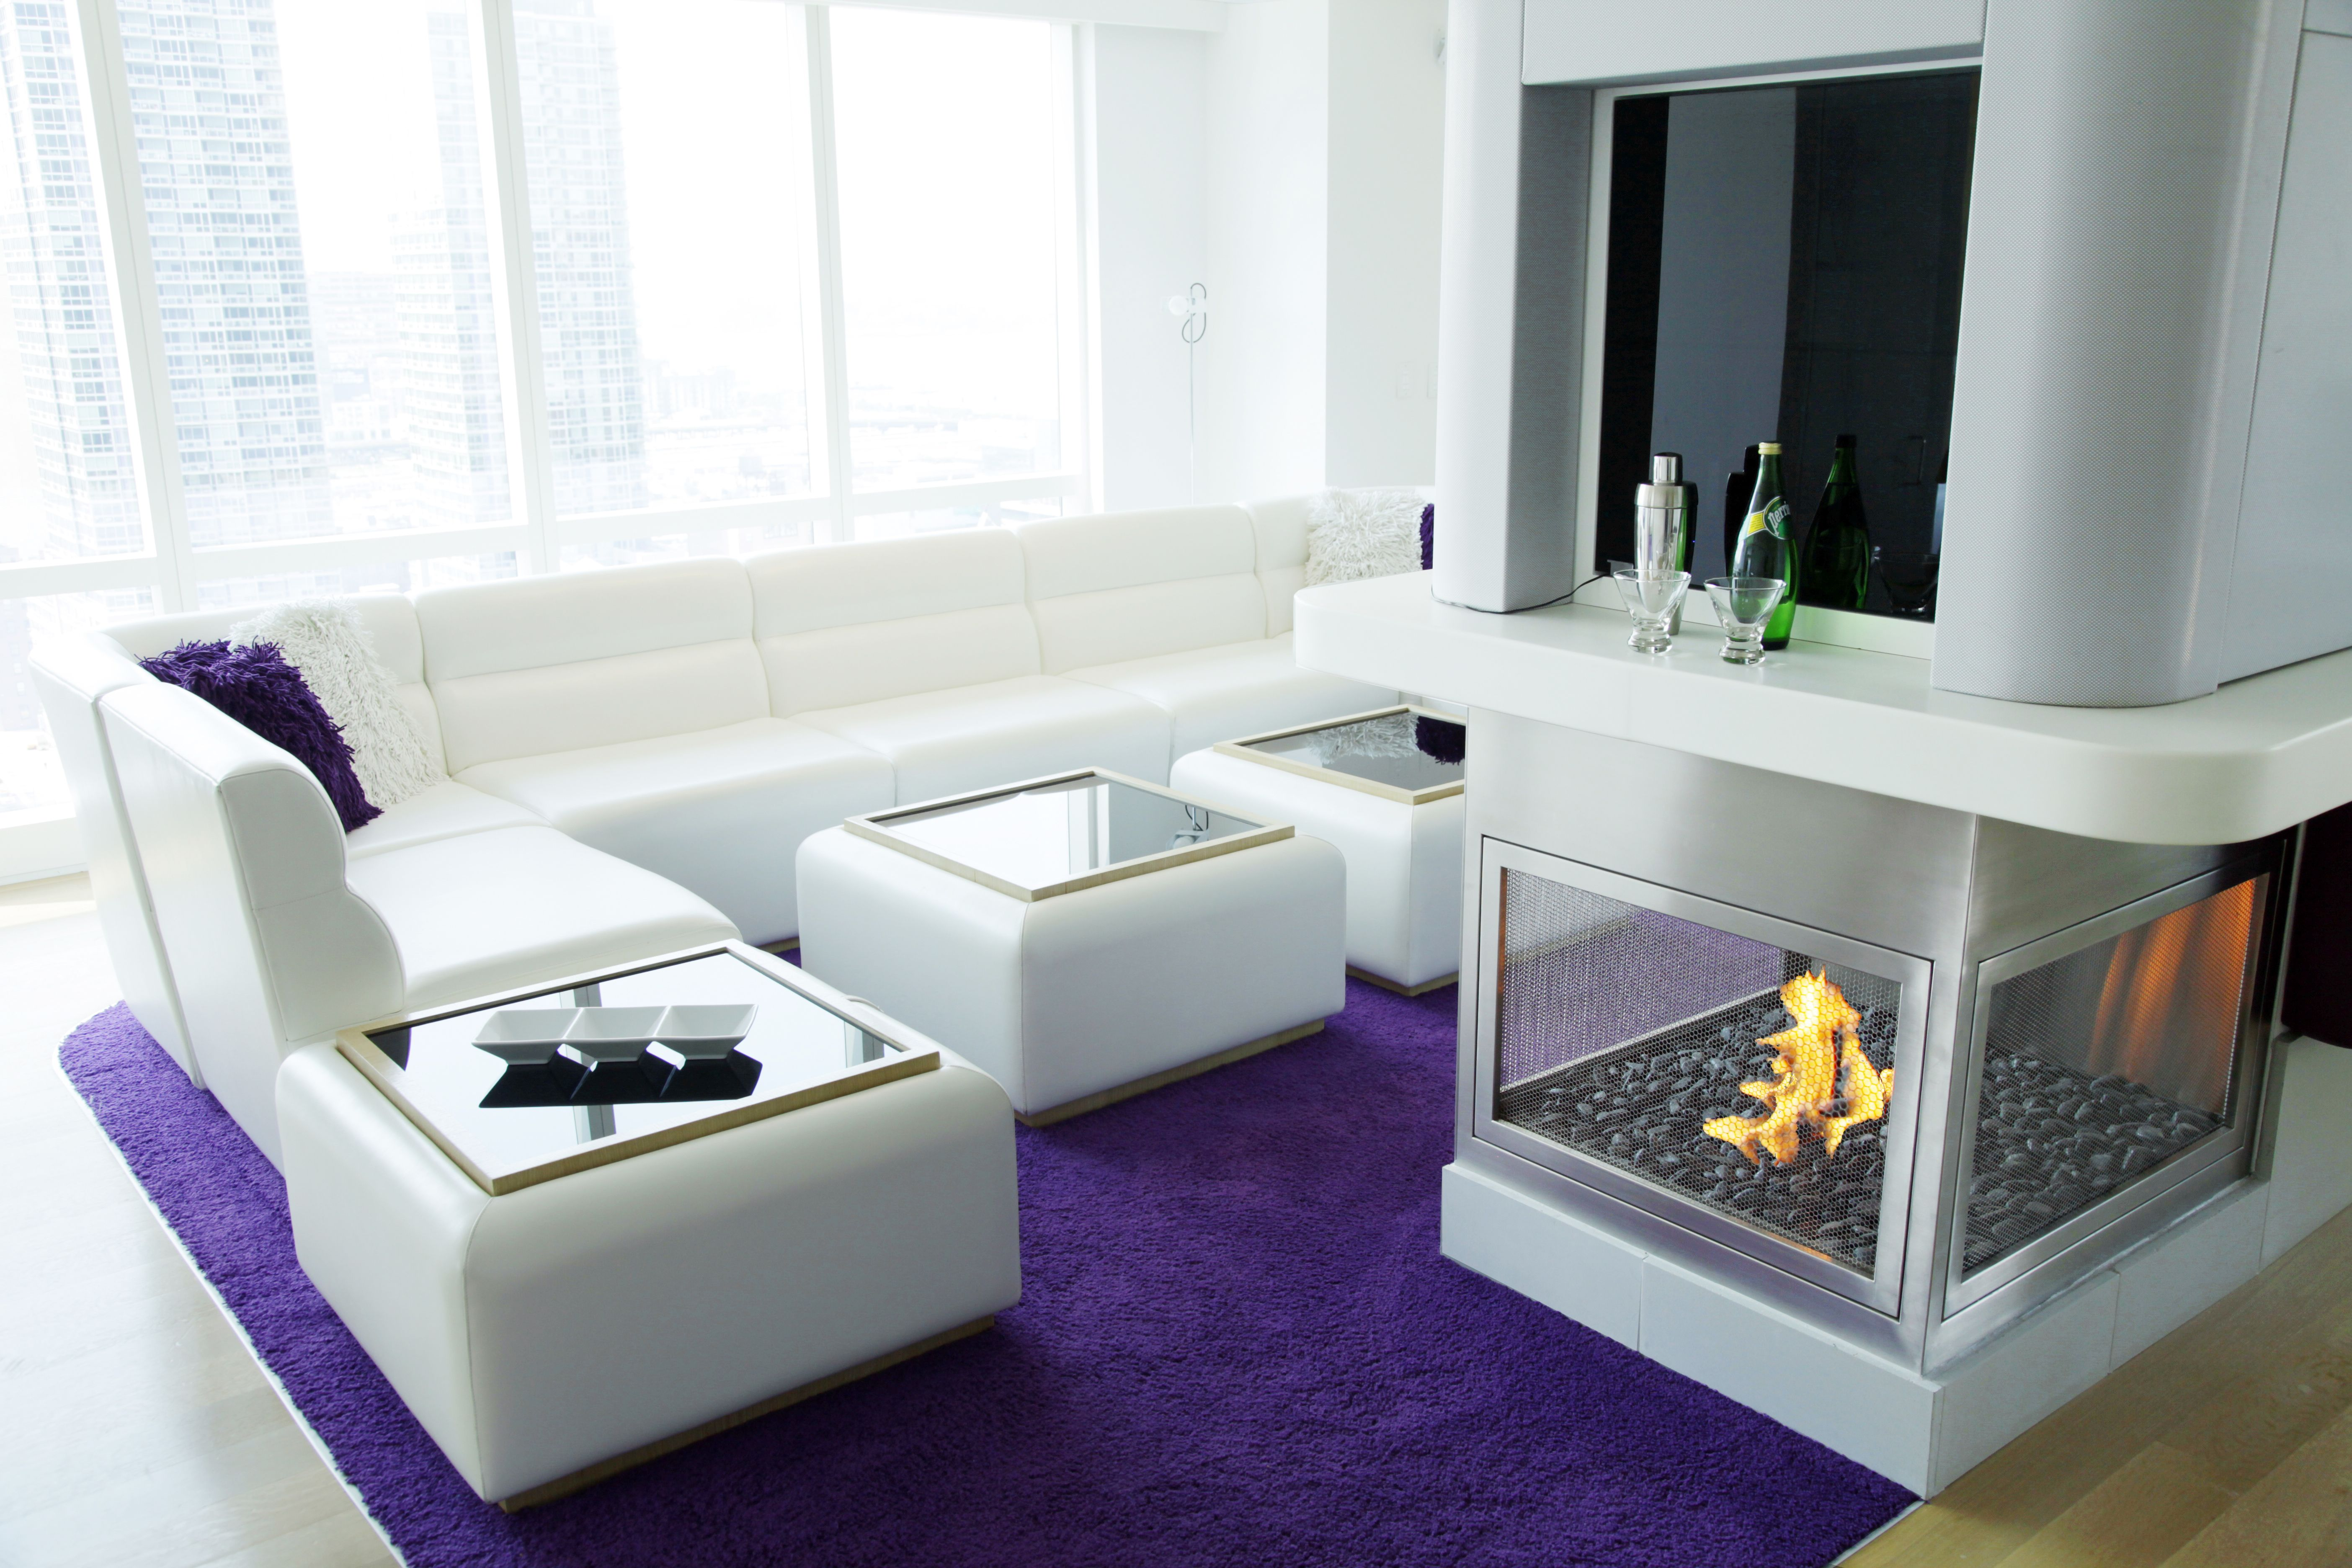 custom 3 sided stainless steel hearth cabinet ventless fireplace